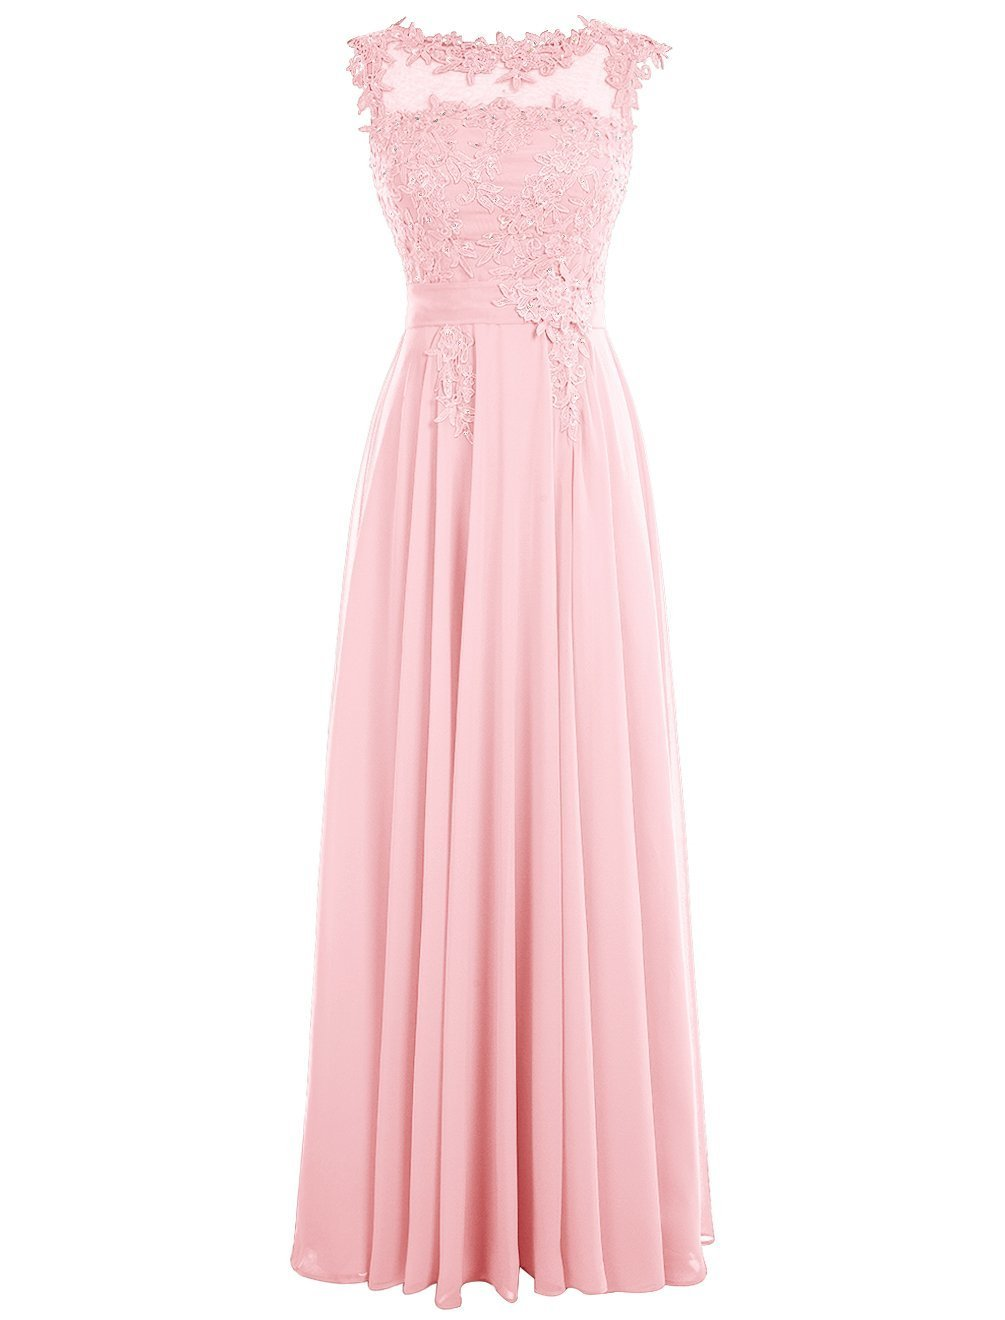 Dressystar Long Bridesmaid Chiffon Prom Dresses Scoop Gowns with Appliques V Back Size 24W Pink